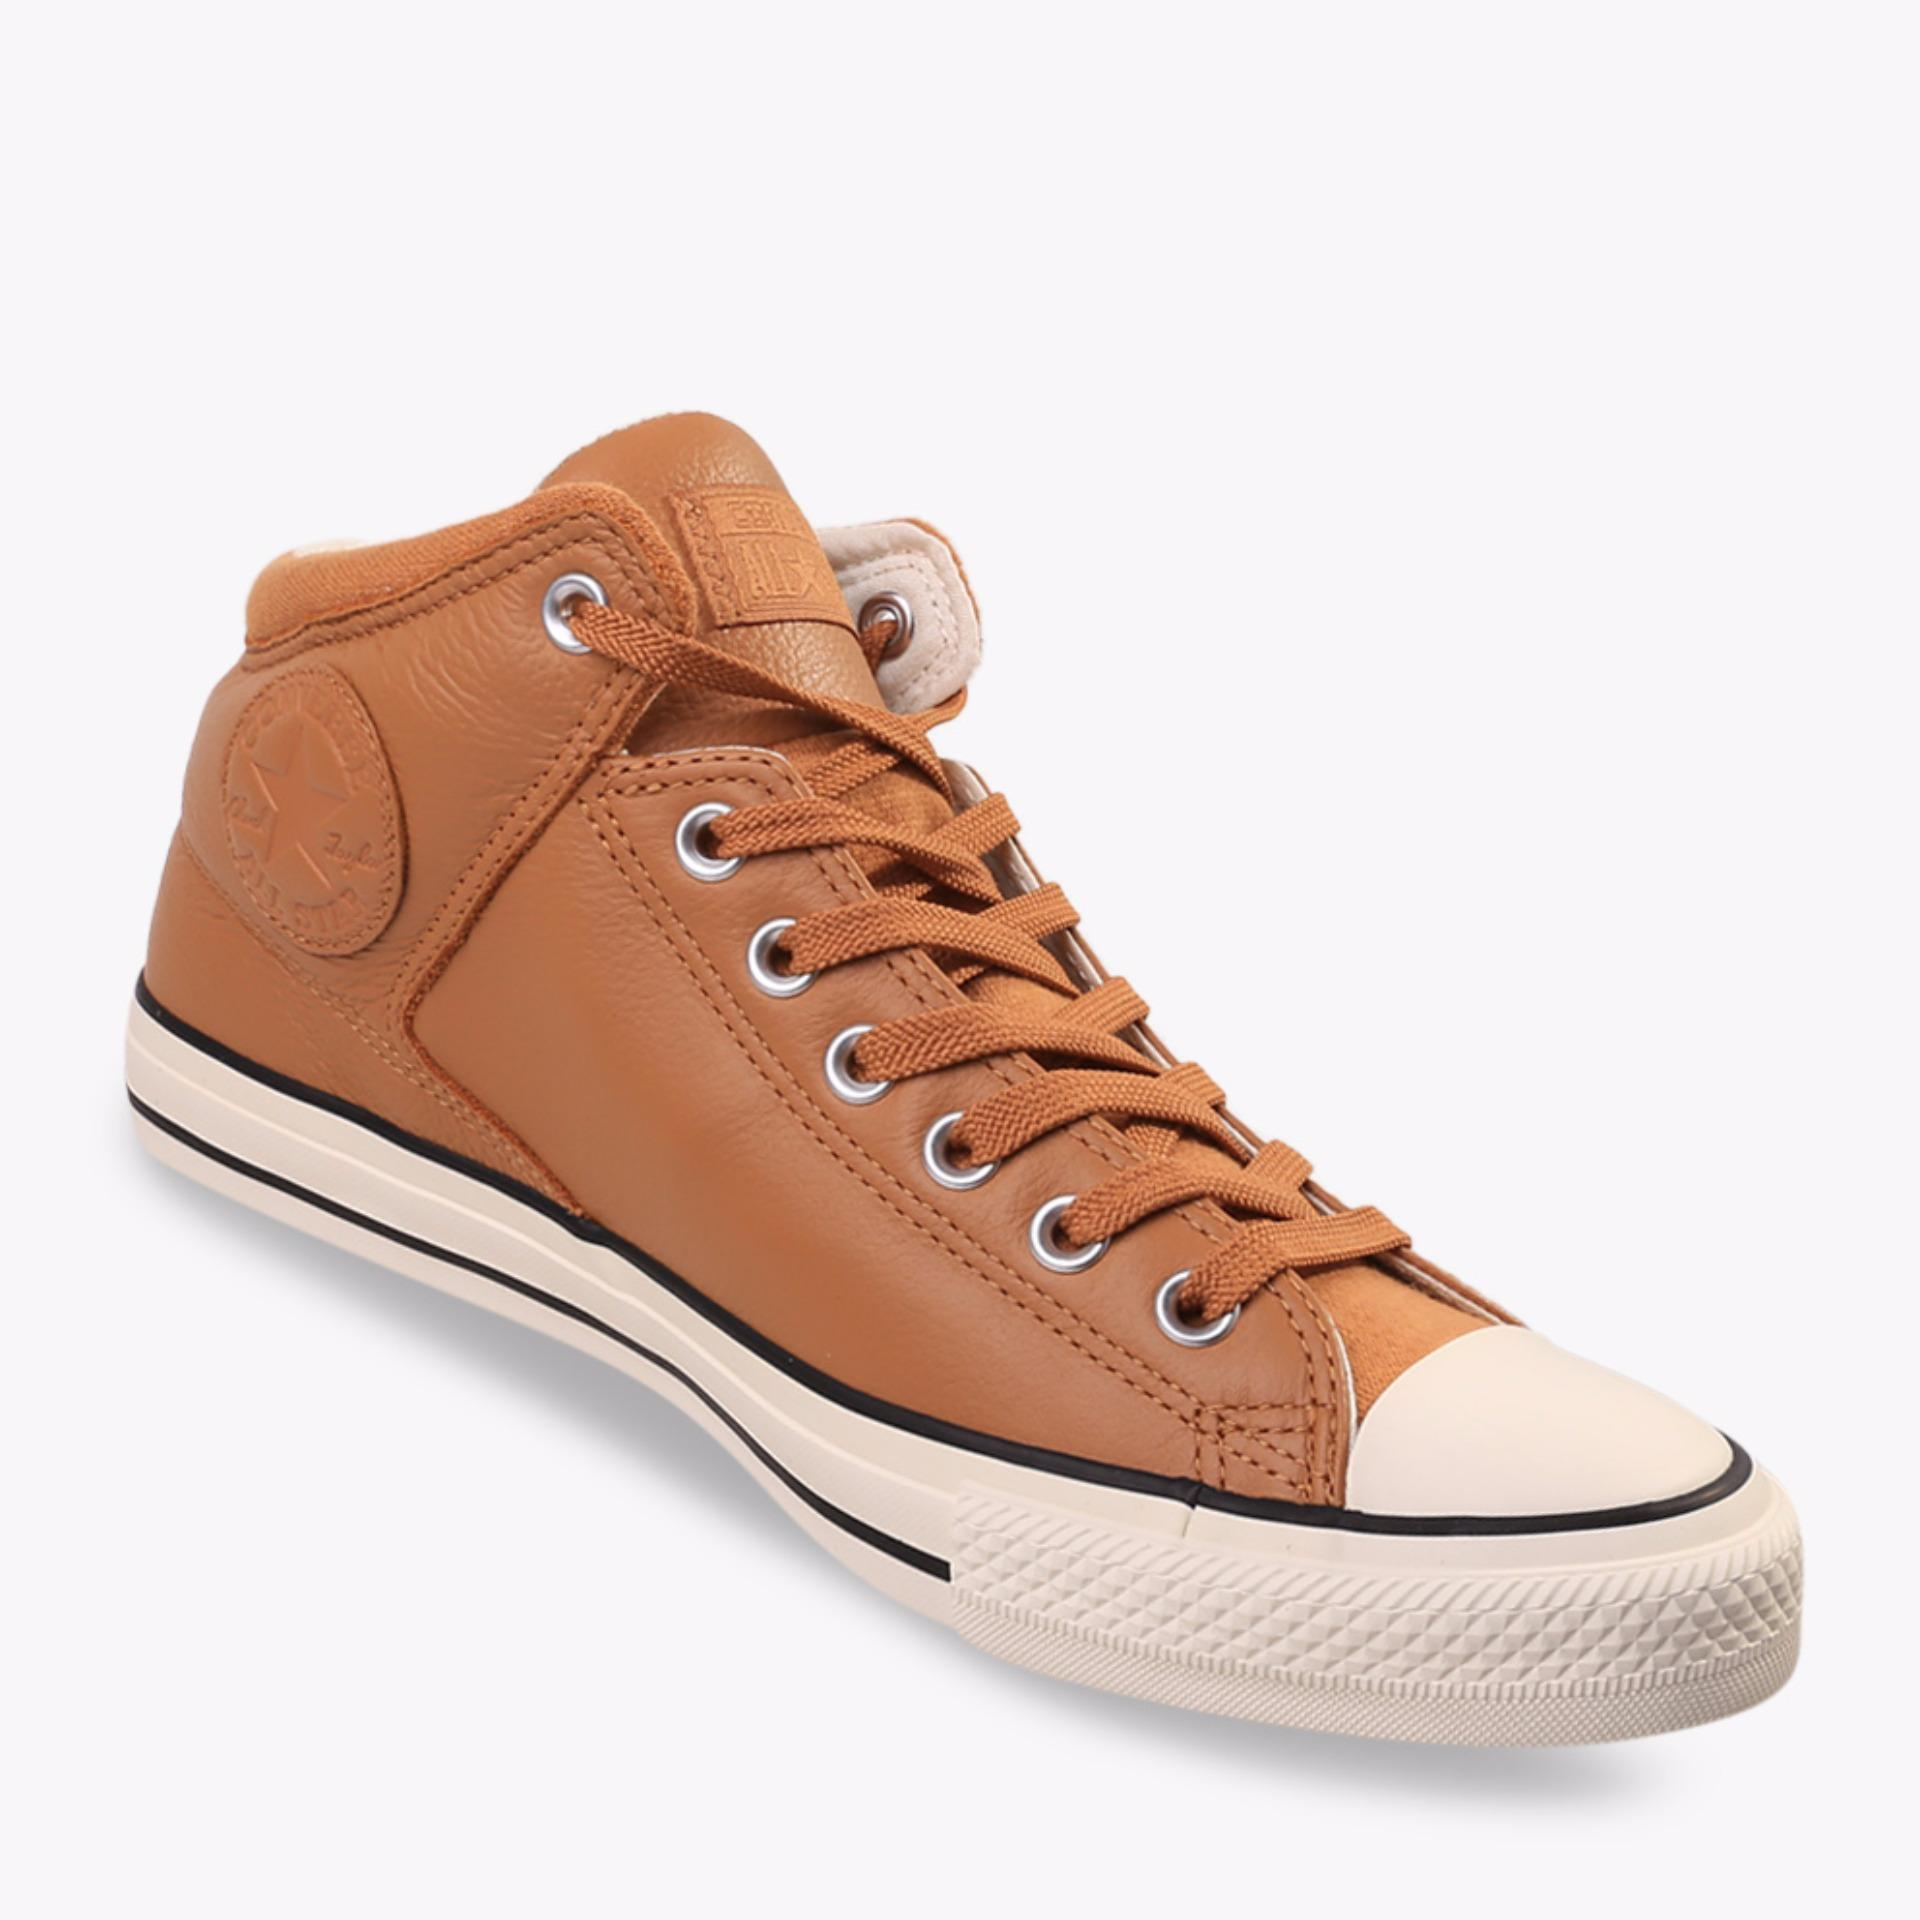 Beli Converse Chuck Taylor All Star High Stret Men S Sneakers Shoes Cokelat Terbaru